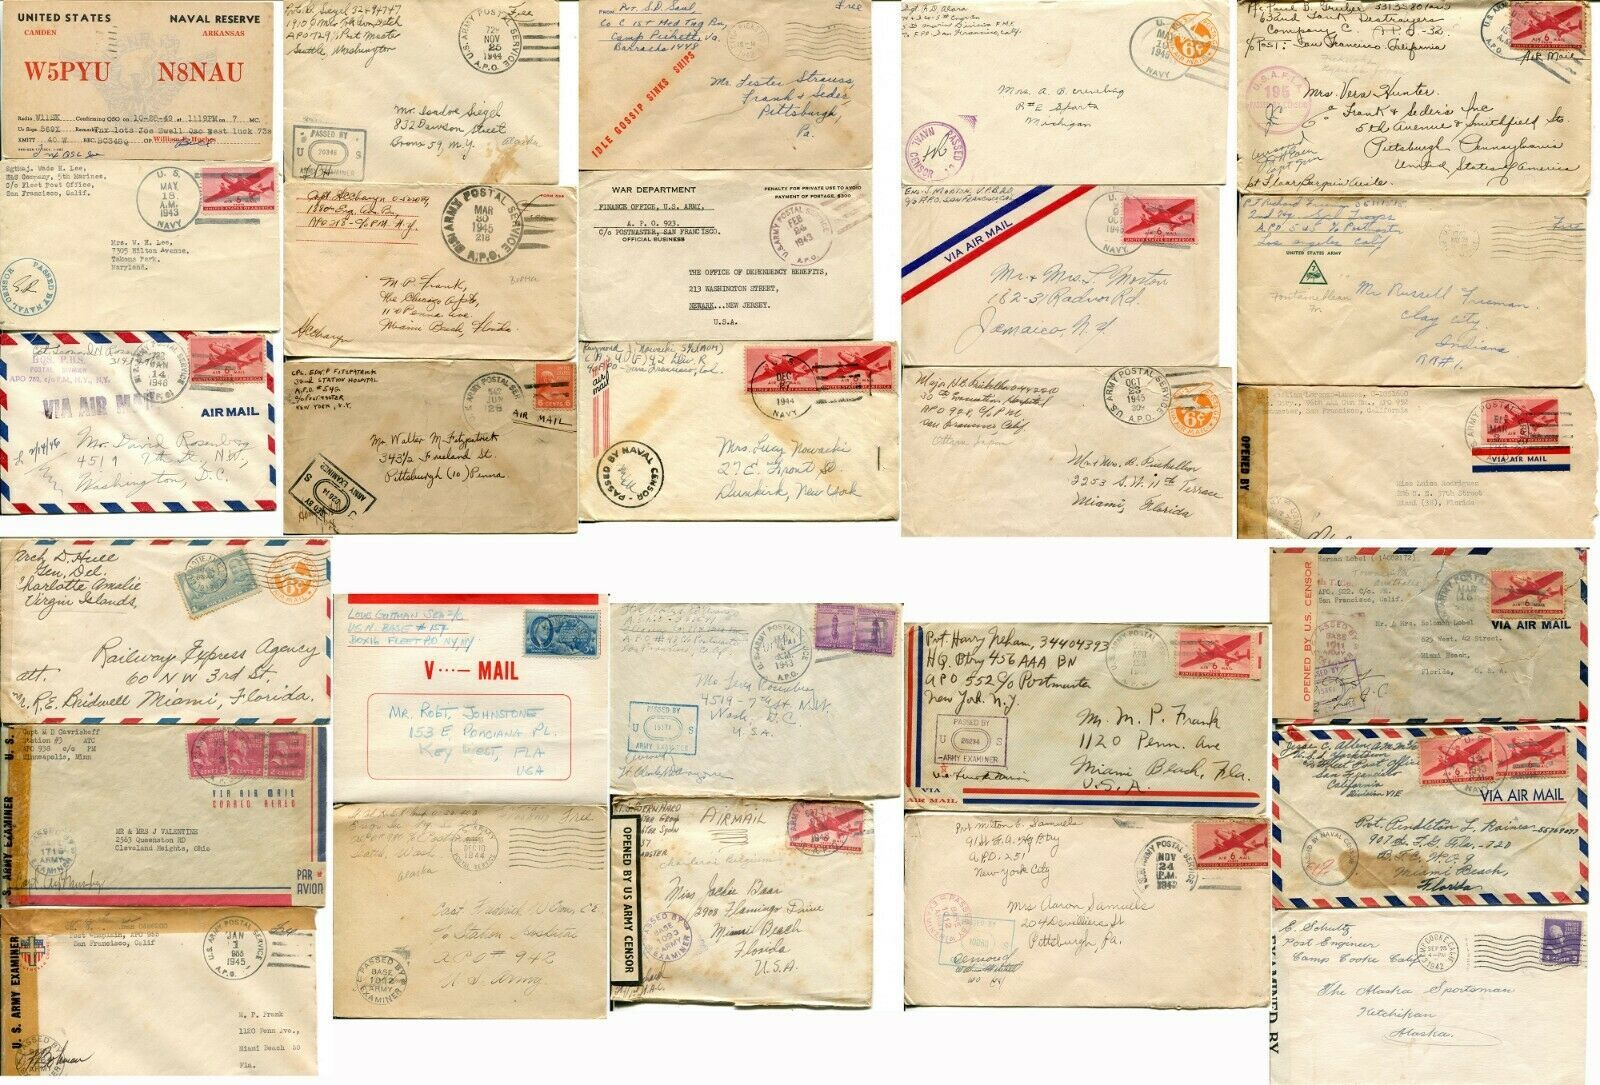 US Army Airmail WWII APO Navy Military Cover Examined Postage Collection